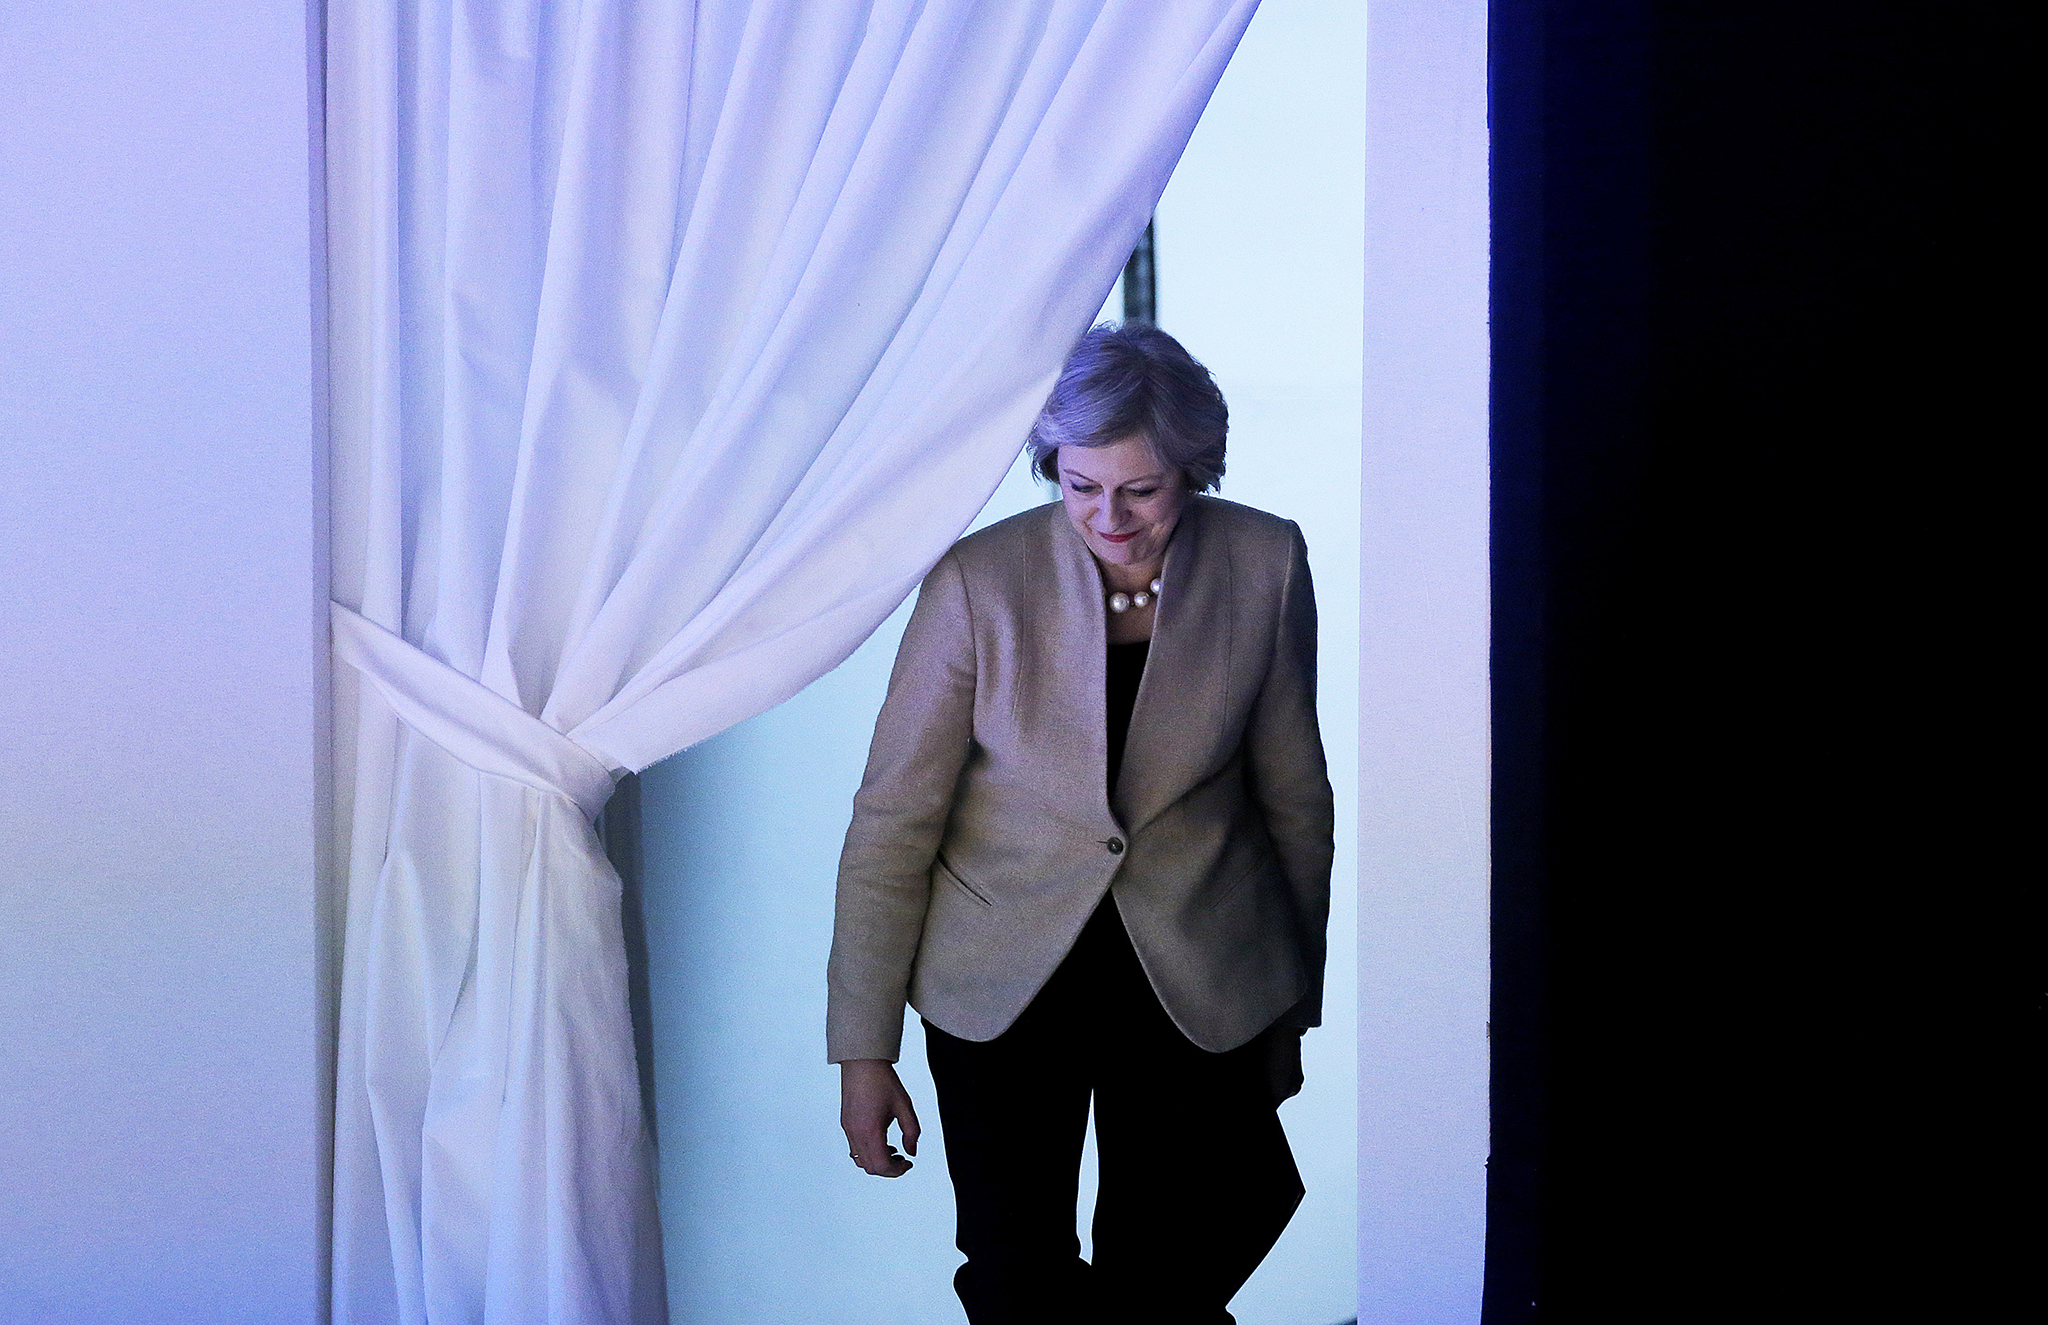 British Prime Minister Theresa May enters the room through a curtain to speak on the third day of the annual meeting of the World Economic Forum in Davos, Switzerland, Thursday, Jan. 19, 2017.  (AP Photo/Michel Euler)